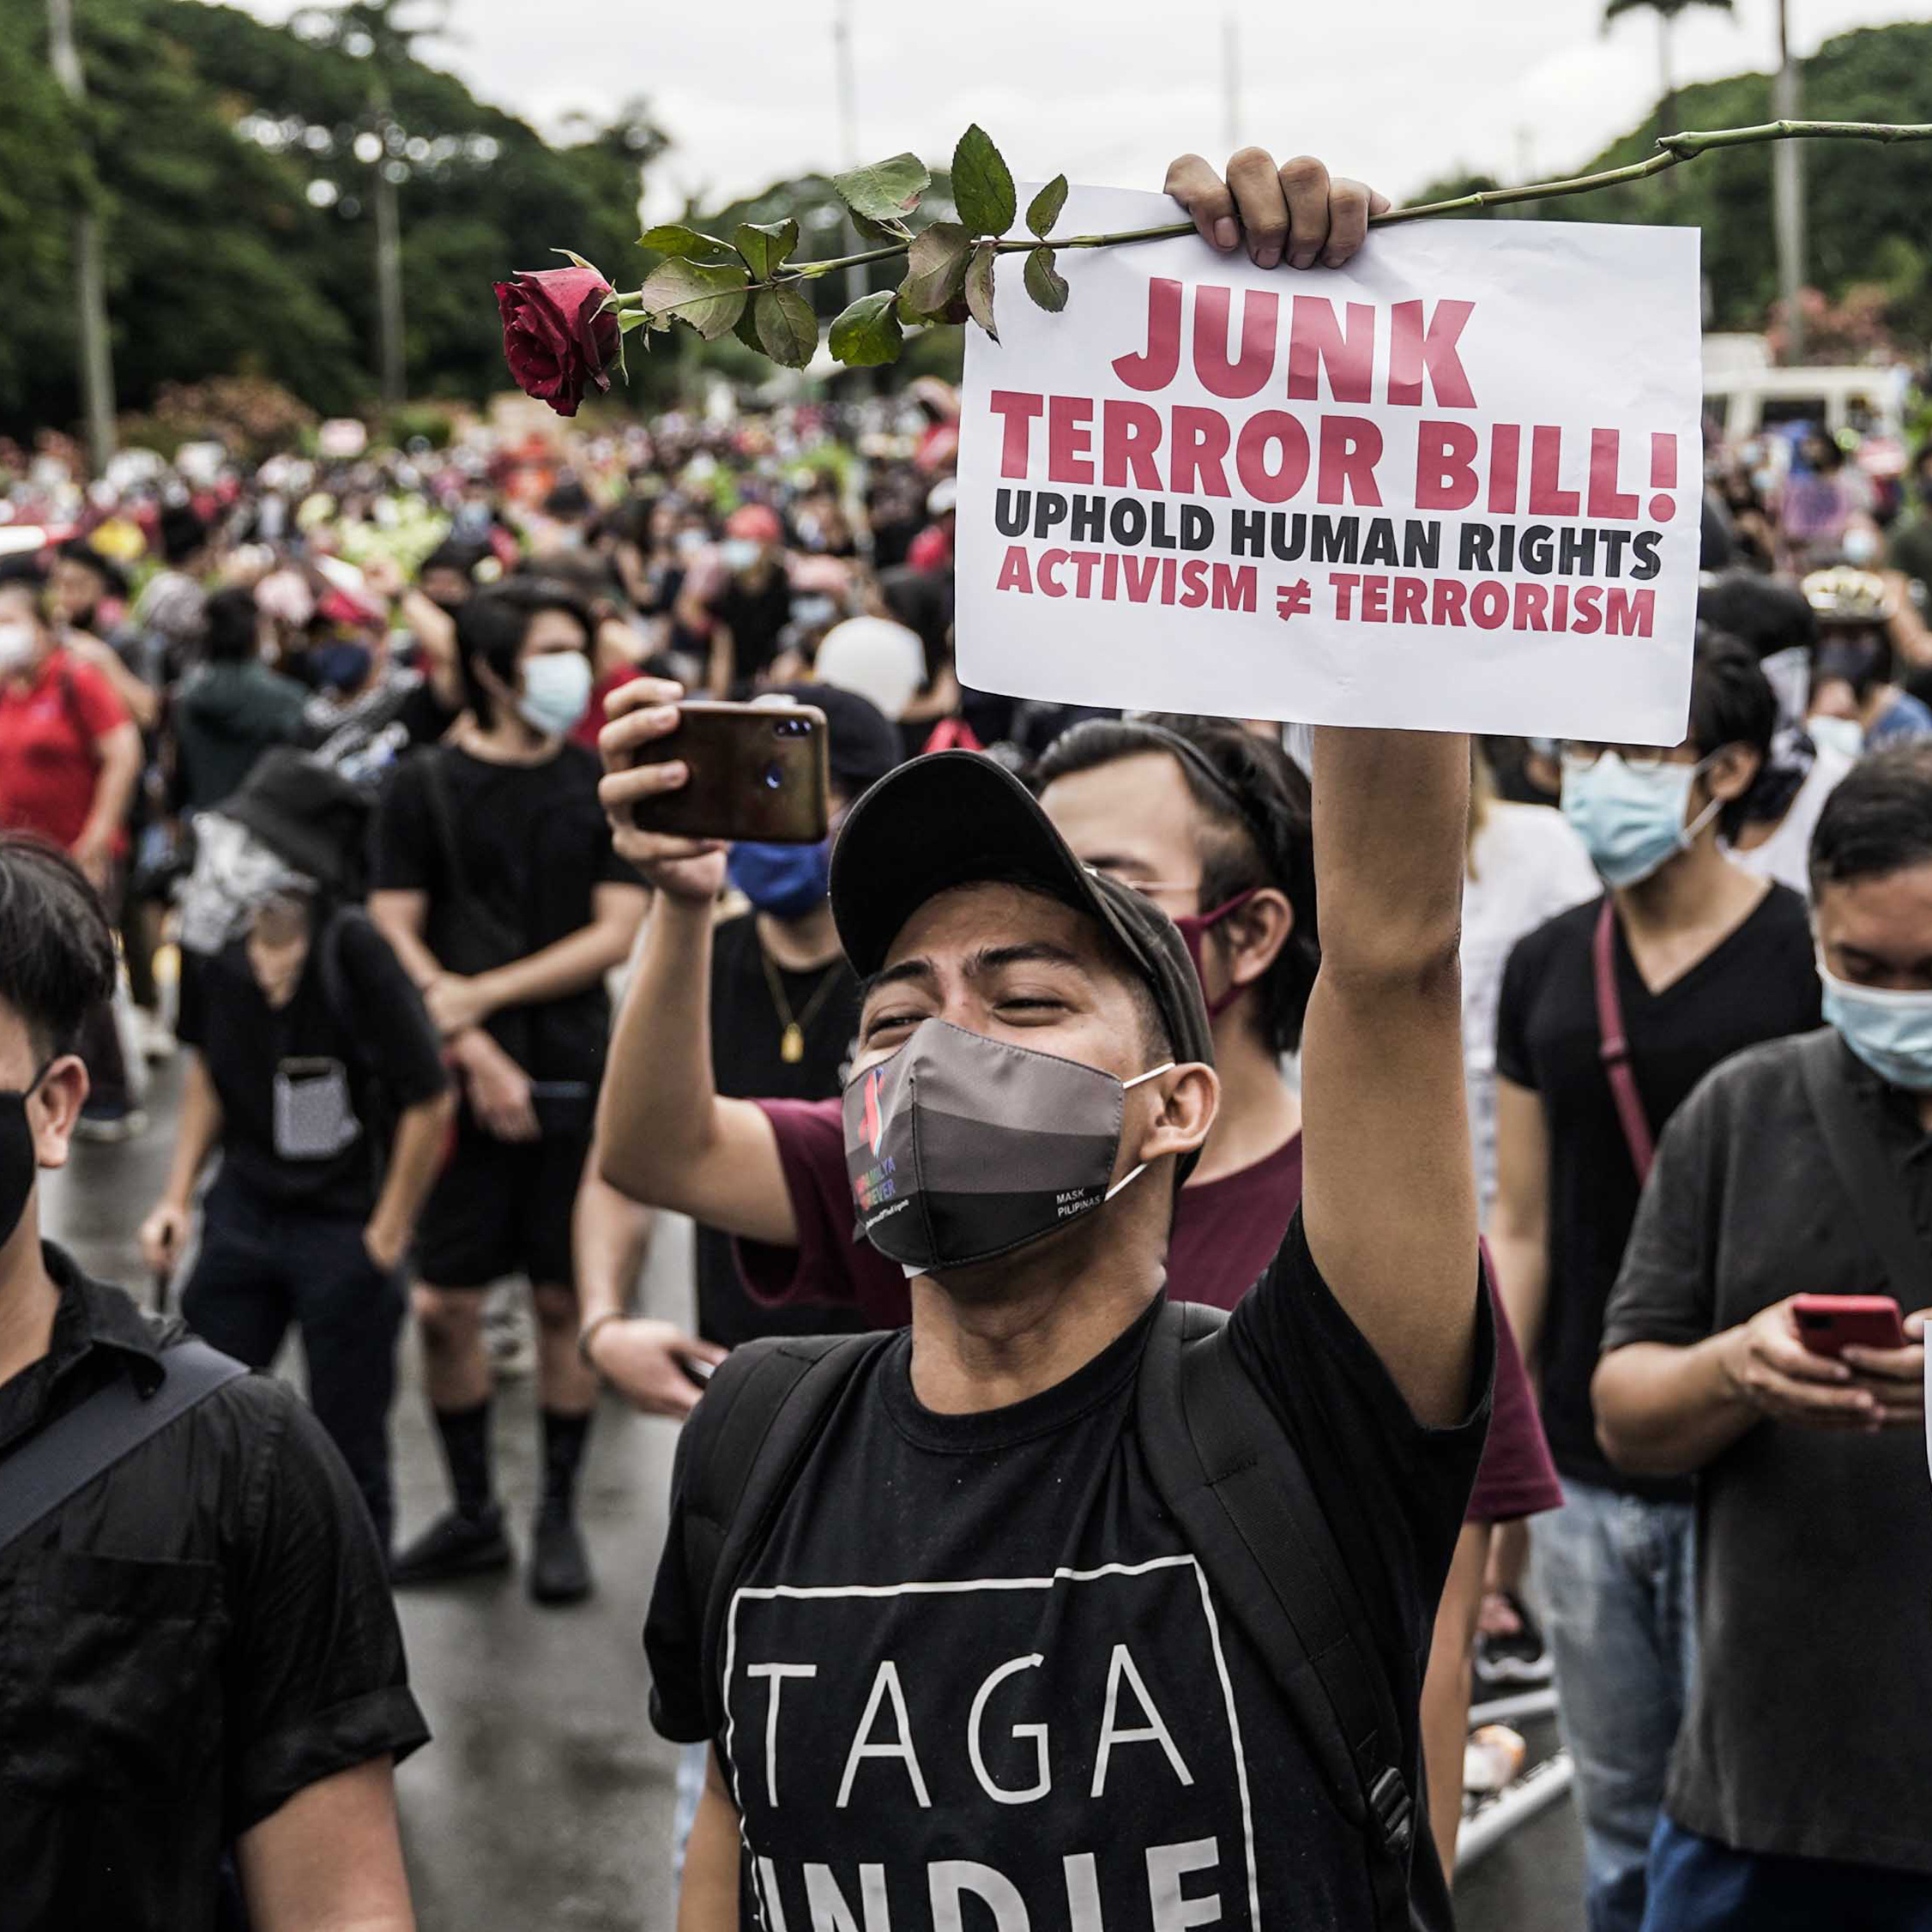 Protesters wearing face masks and shields carry anti-terror bill placards as they march at a university campus in Manila on June 12, 2020. Photo: Miggy Hilario/AFP via Getty Images.